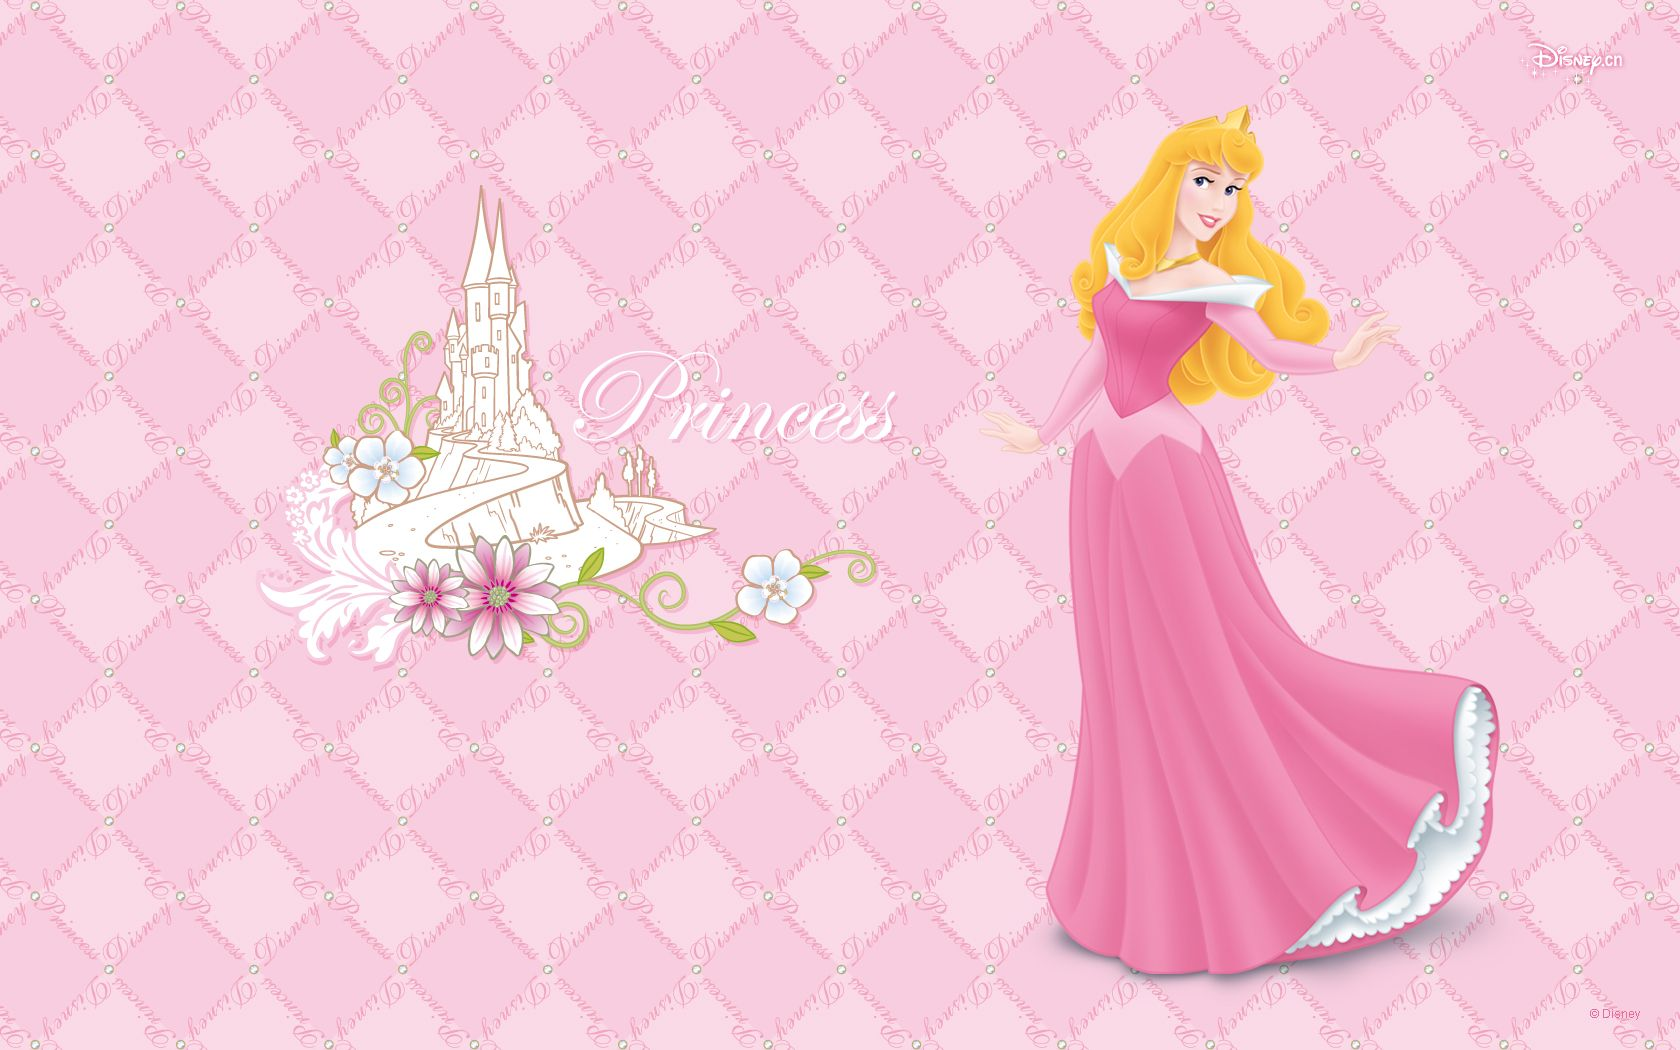 princesses hd wallpapers free - photo #39